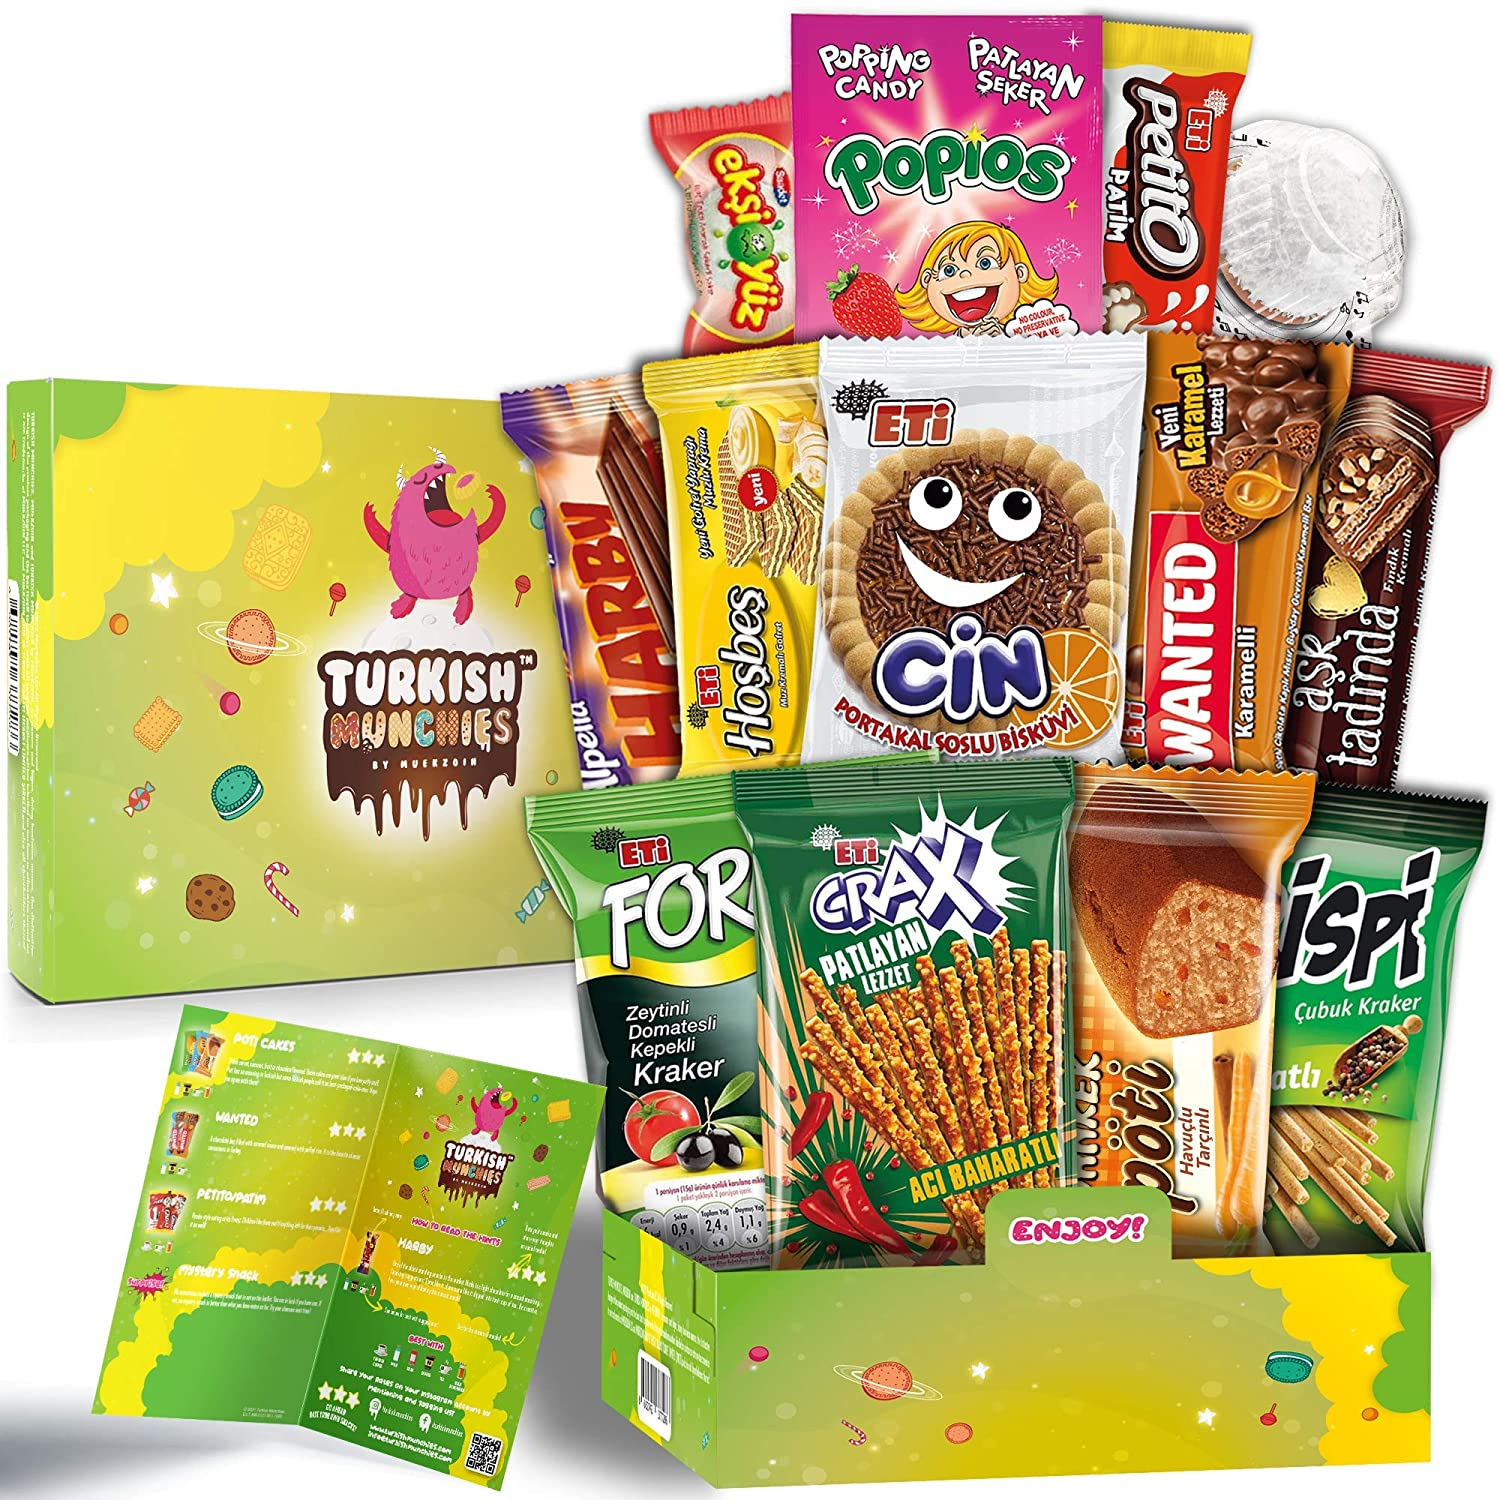 Midi Energetic Premium International Snacks Variety Pack Care Package for Adults and Kids, Ultimate Assortment of Turkish Treats, Mix variety pack of snacks, Best Foreign Candy or Foreign Snacks Box